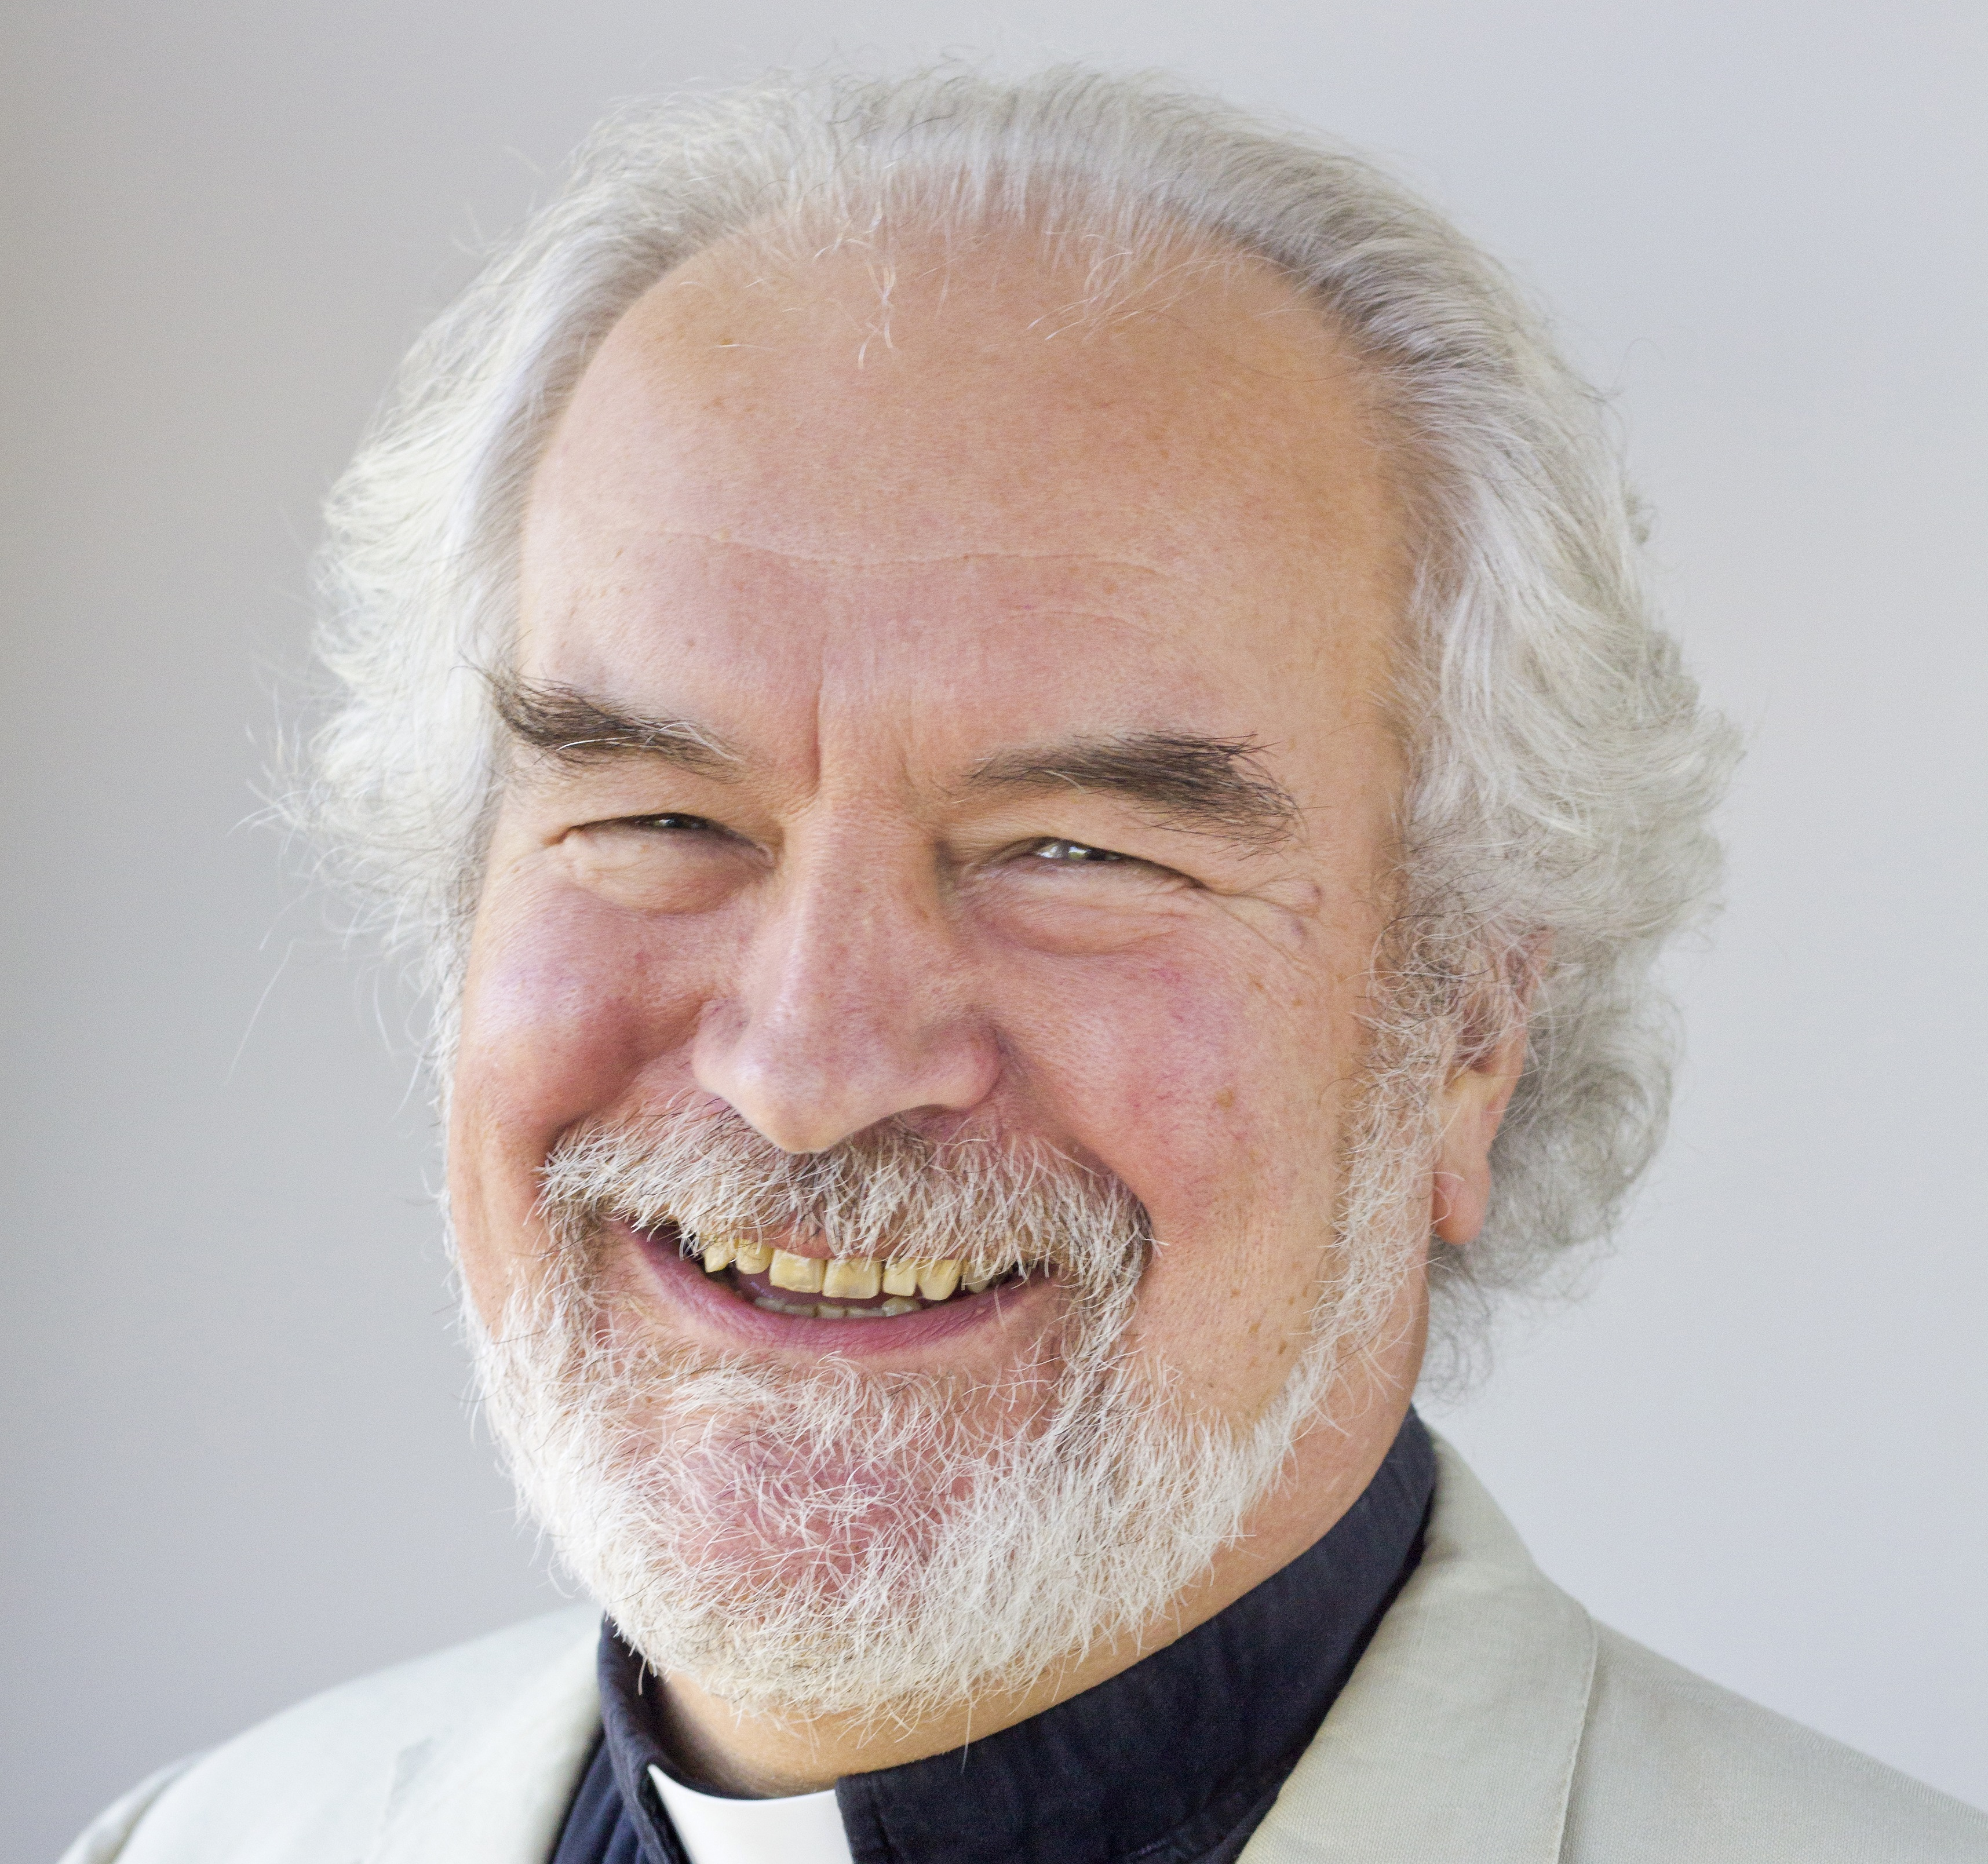 Open Revd Charles Sutton announced as Area Dean for Bristol West